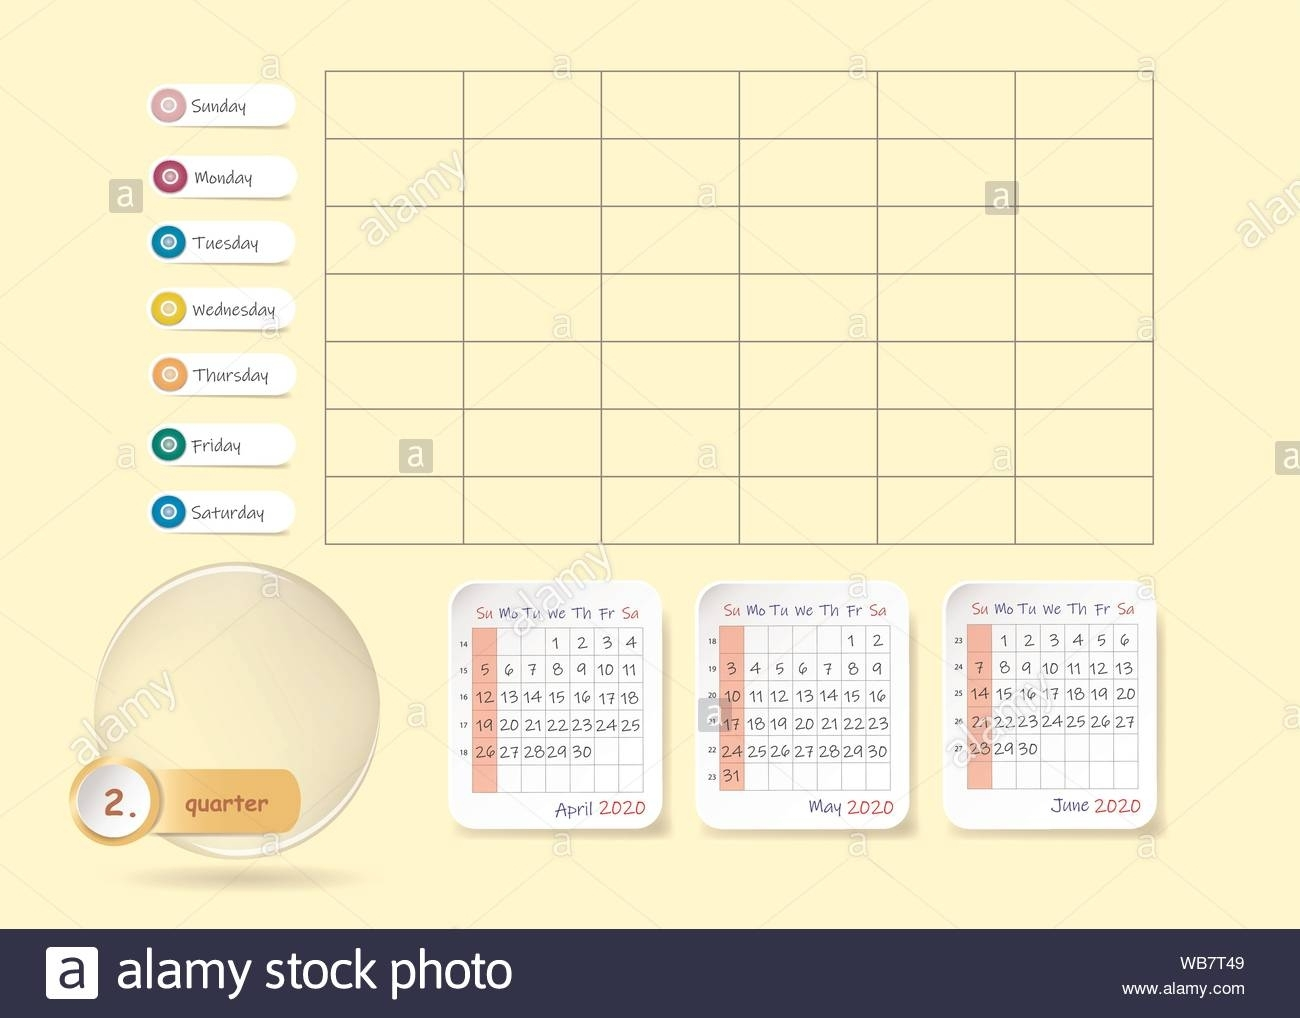 Calendar For Second Quarter Of 2020 Year With Weekly Planner